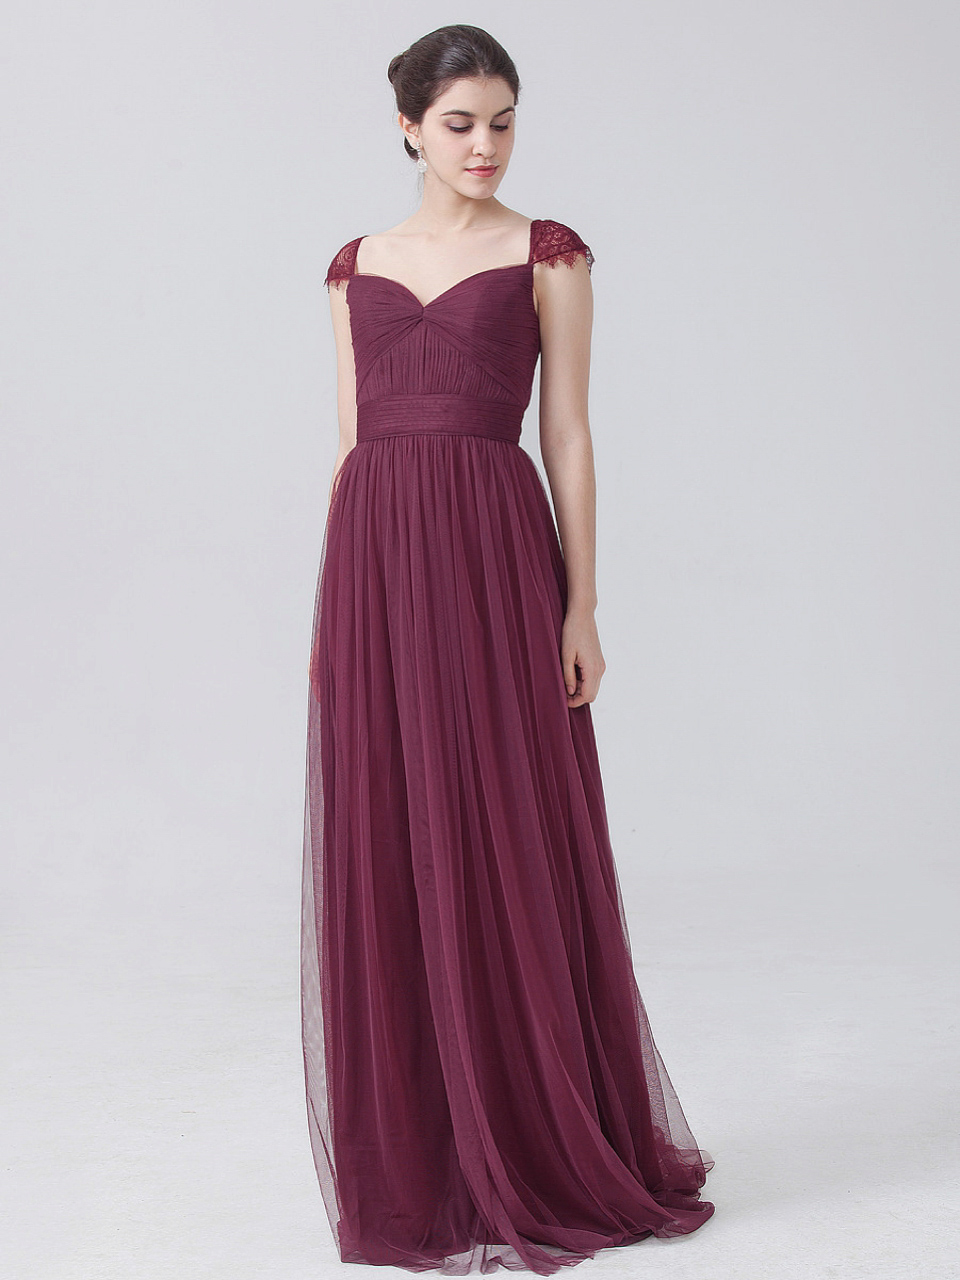 It's May Sale Time! Up To 30% Off Bridesmaid Dresses From For Her And For Him